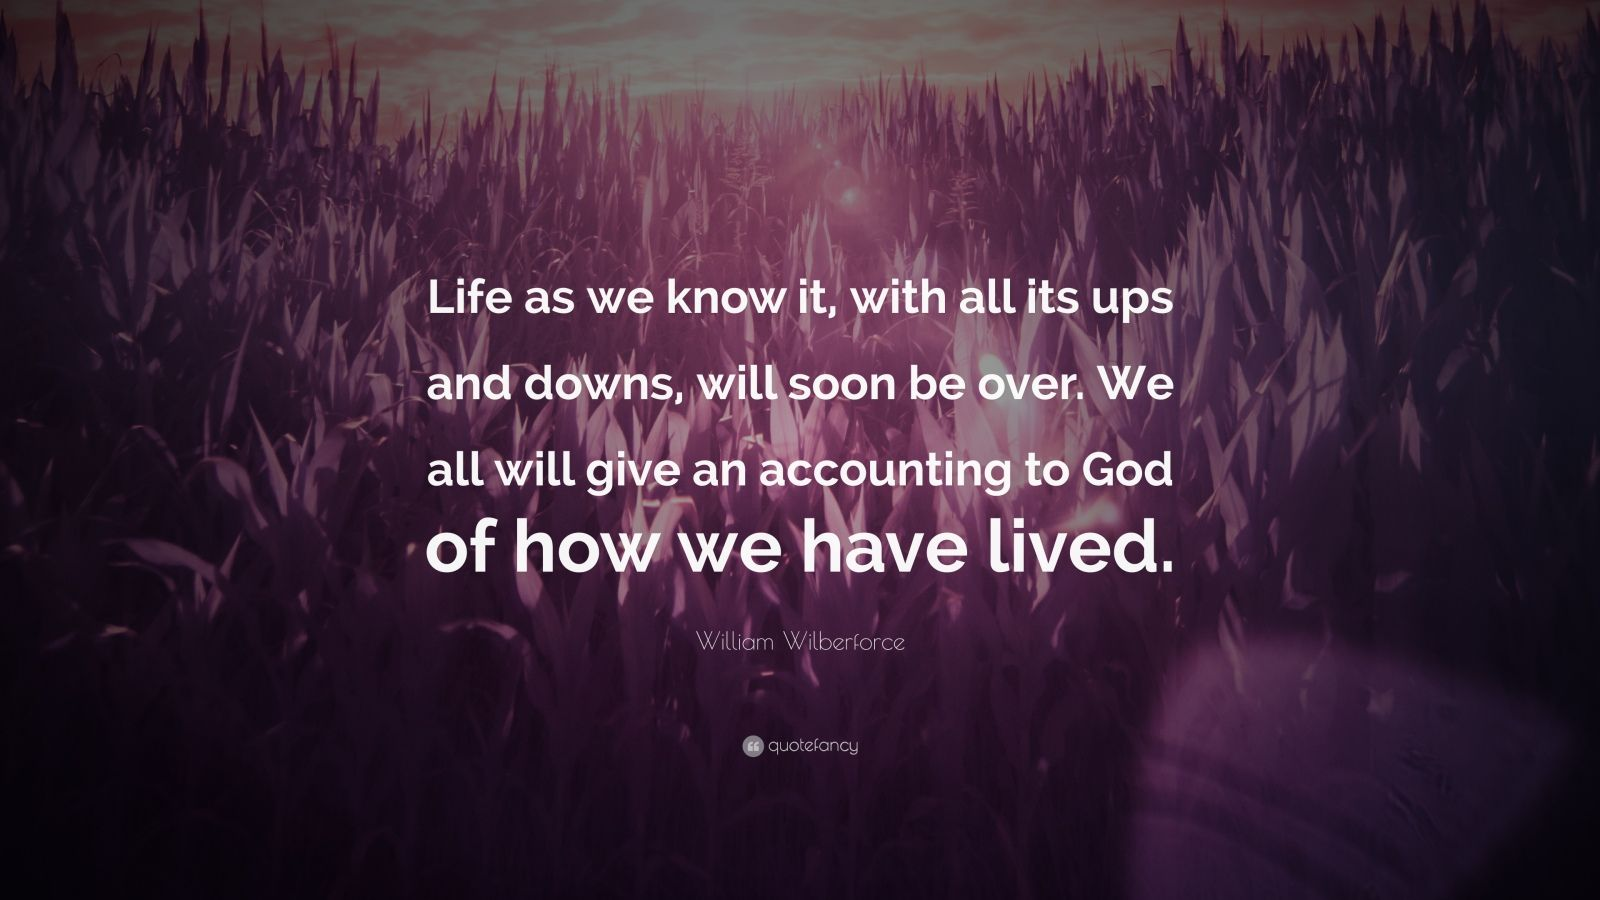 """William Wilberforce Quote: """"Life as we know it, with all its ups and downs, will soon be over. We all will give an accounting to God of how we have lived."""""""